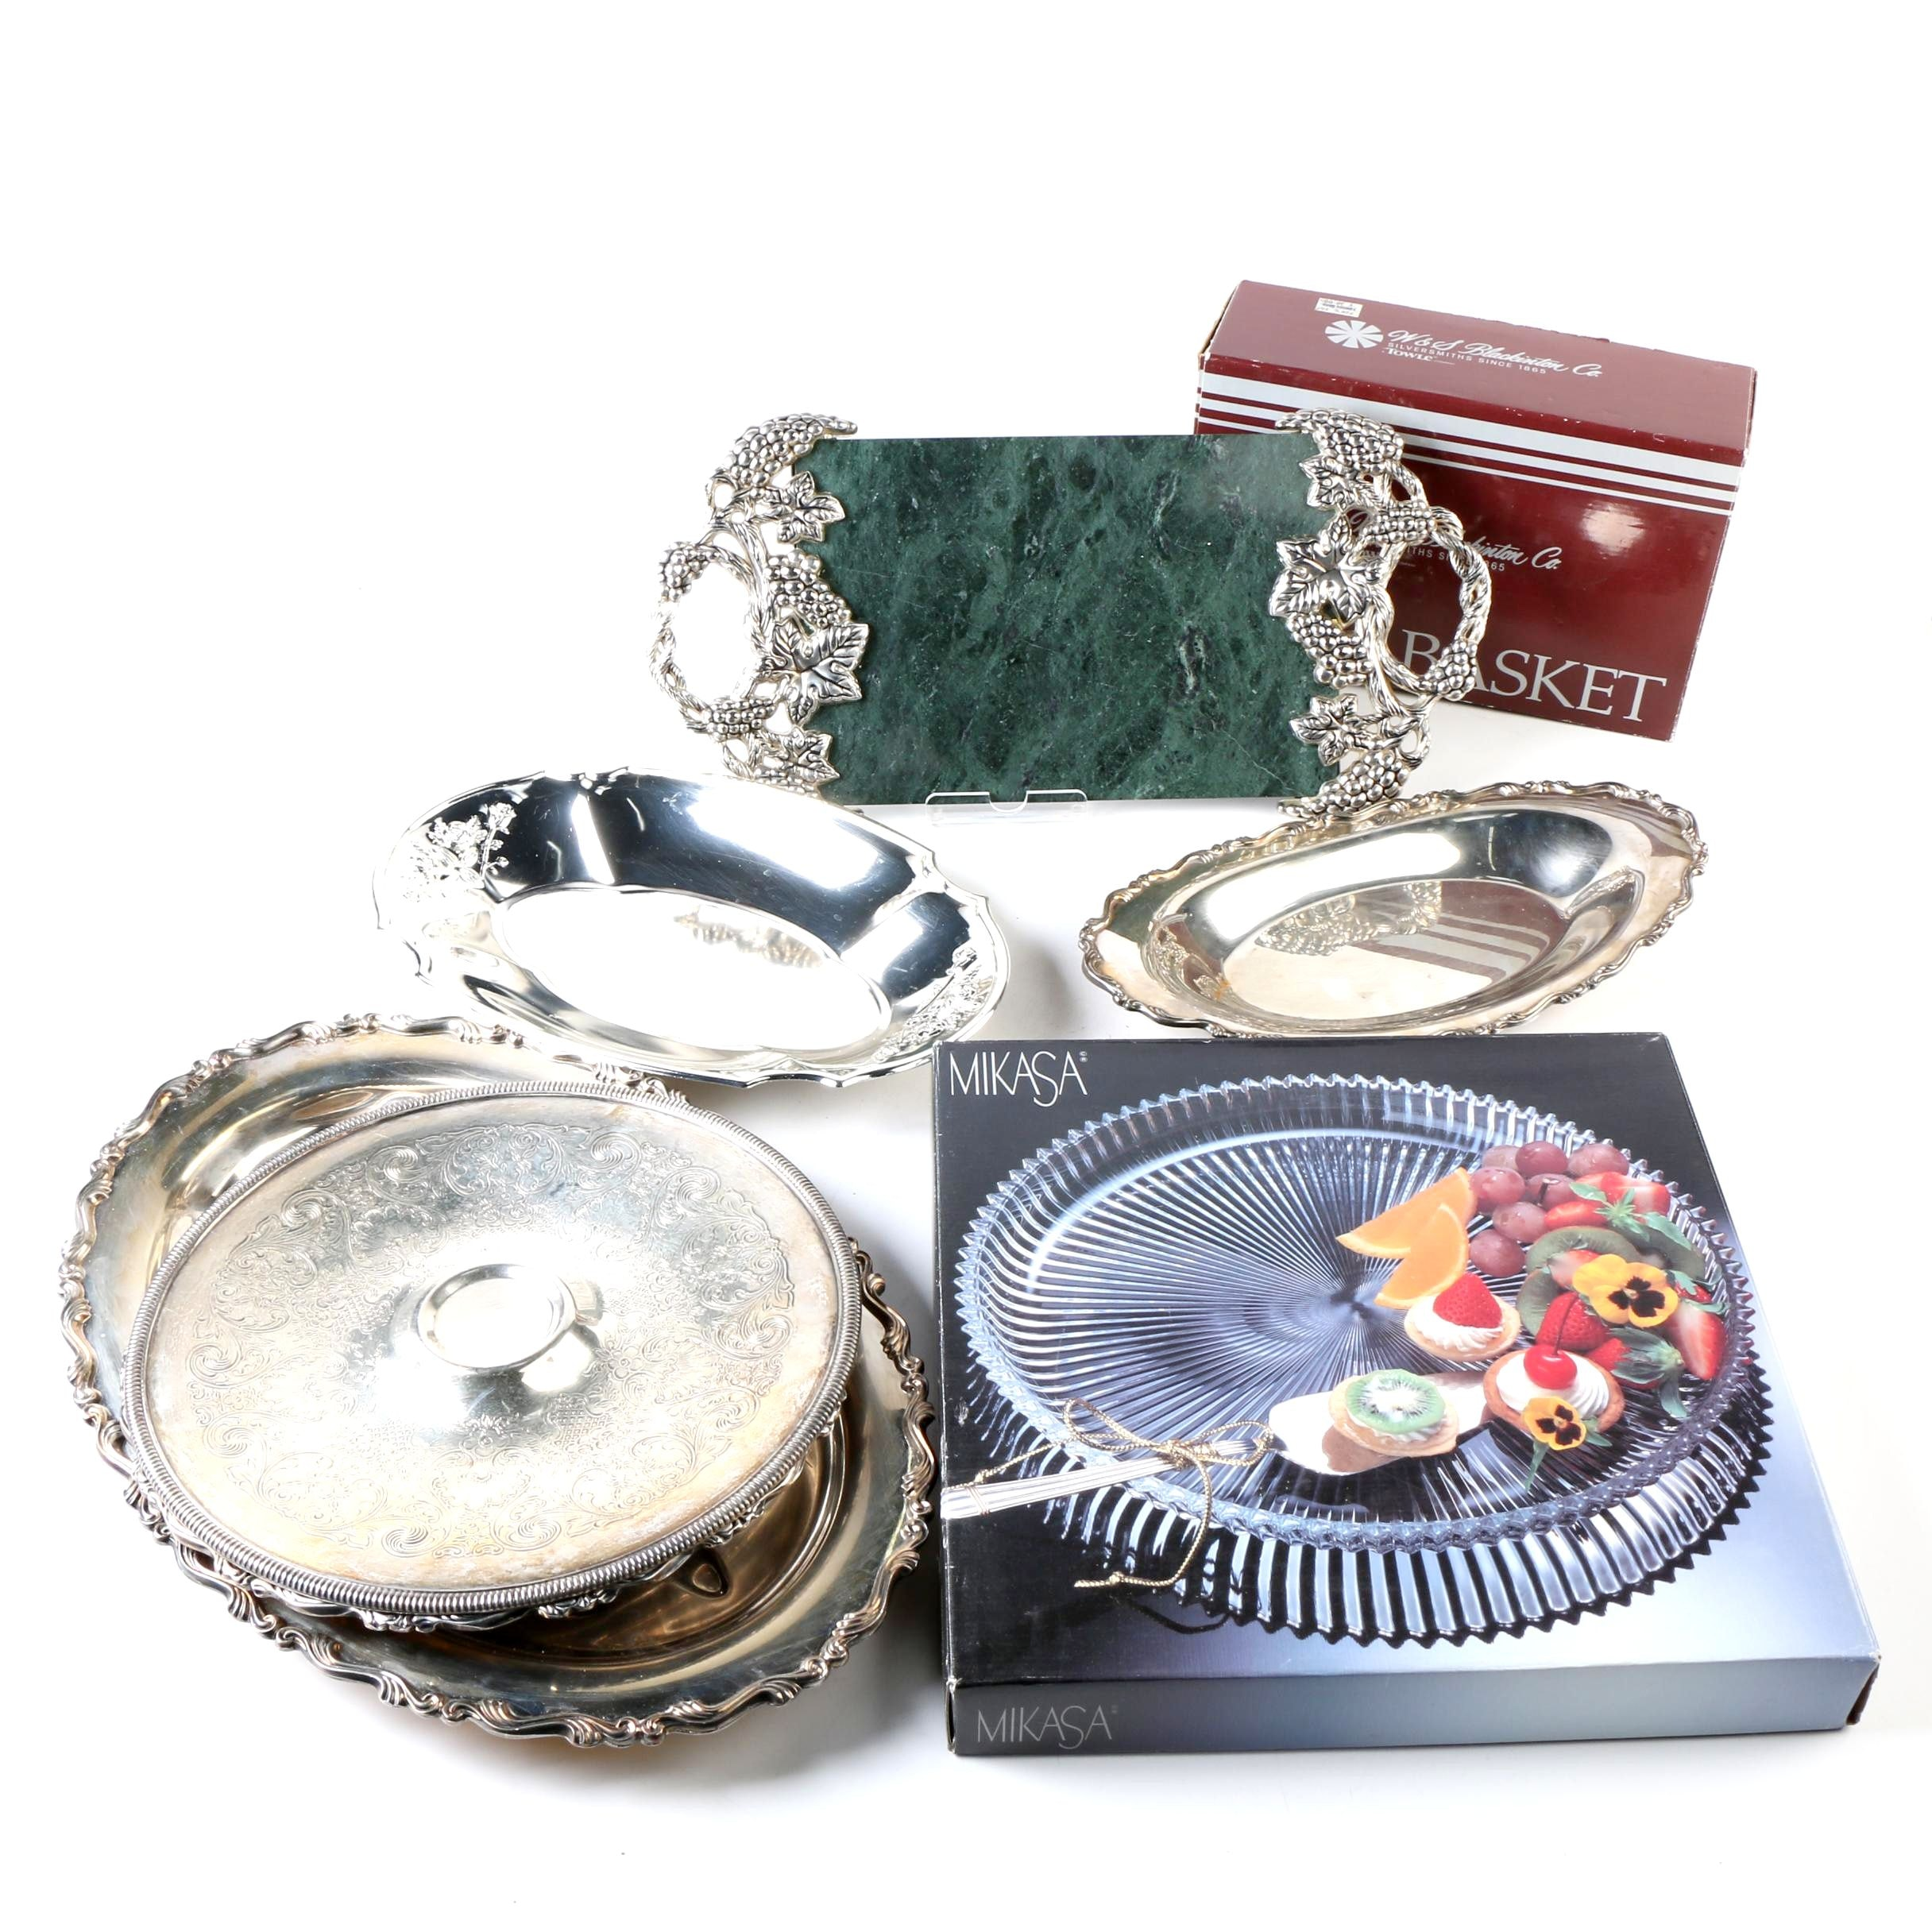 Serving Trays Including Mikasa